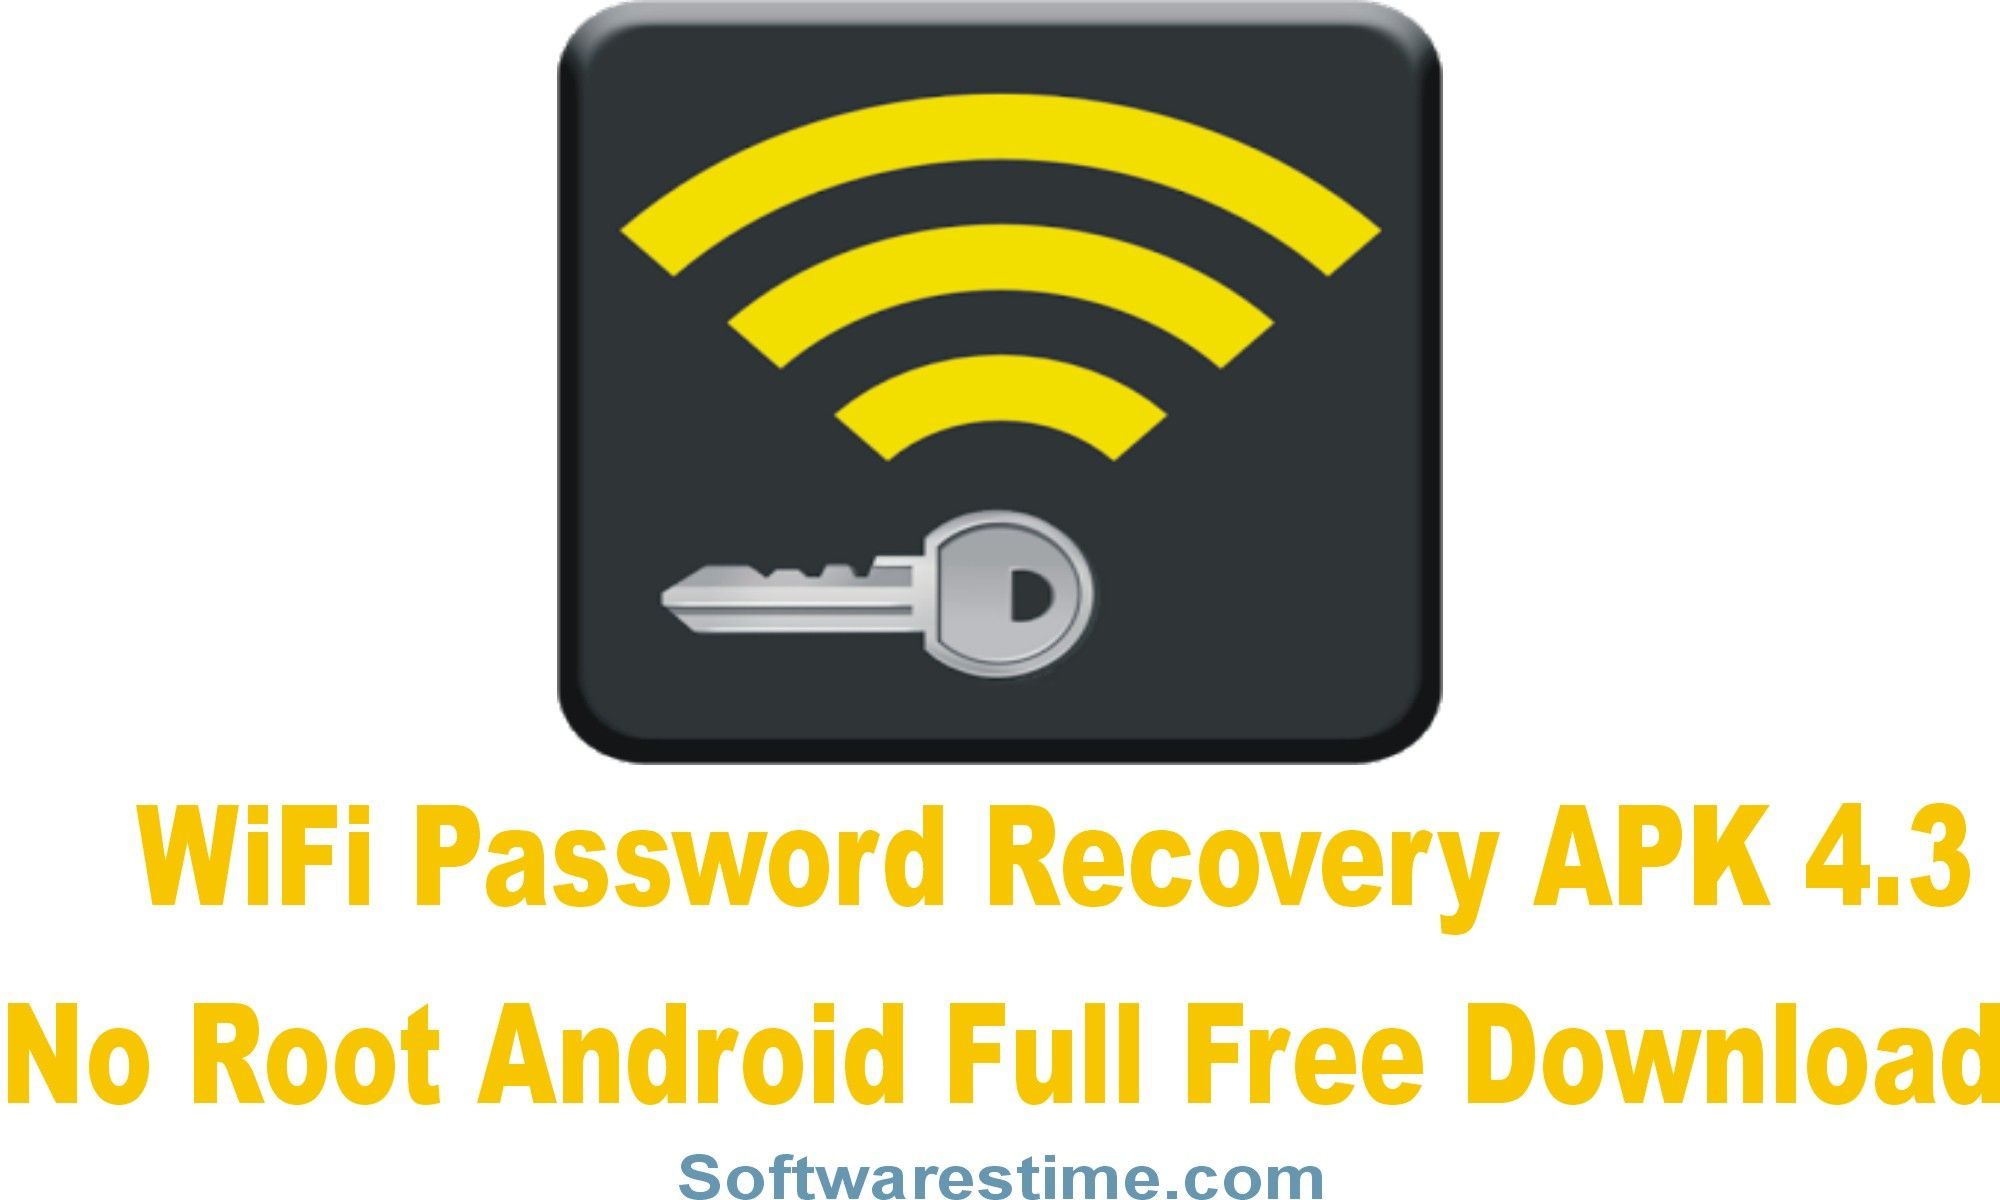 WiFi Password Recovery APK 4 3 No Root Android Full Free